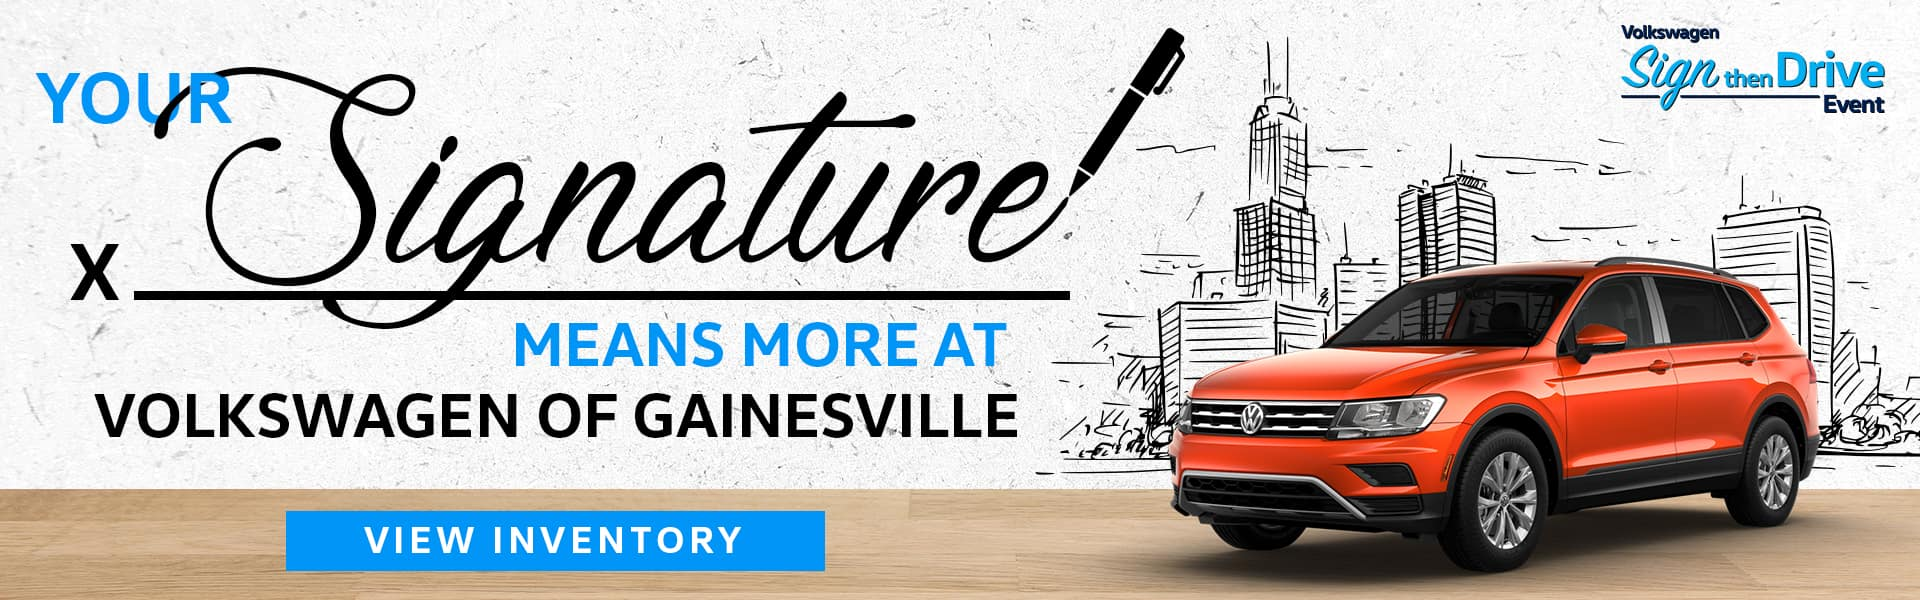 Your Signature Means More At Volkswagen Of Gainesville | Volkswagen Sign Then Drive Event